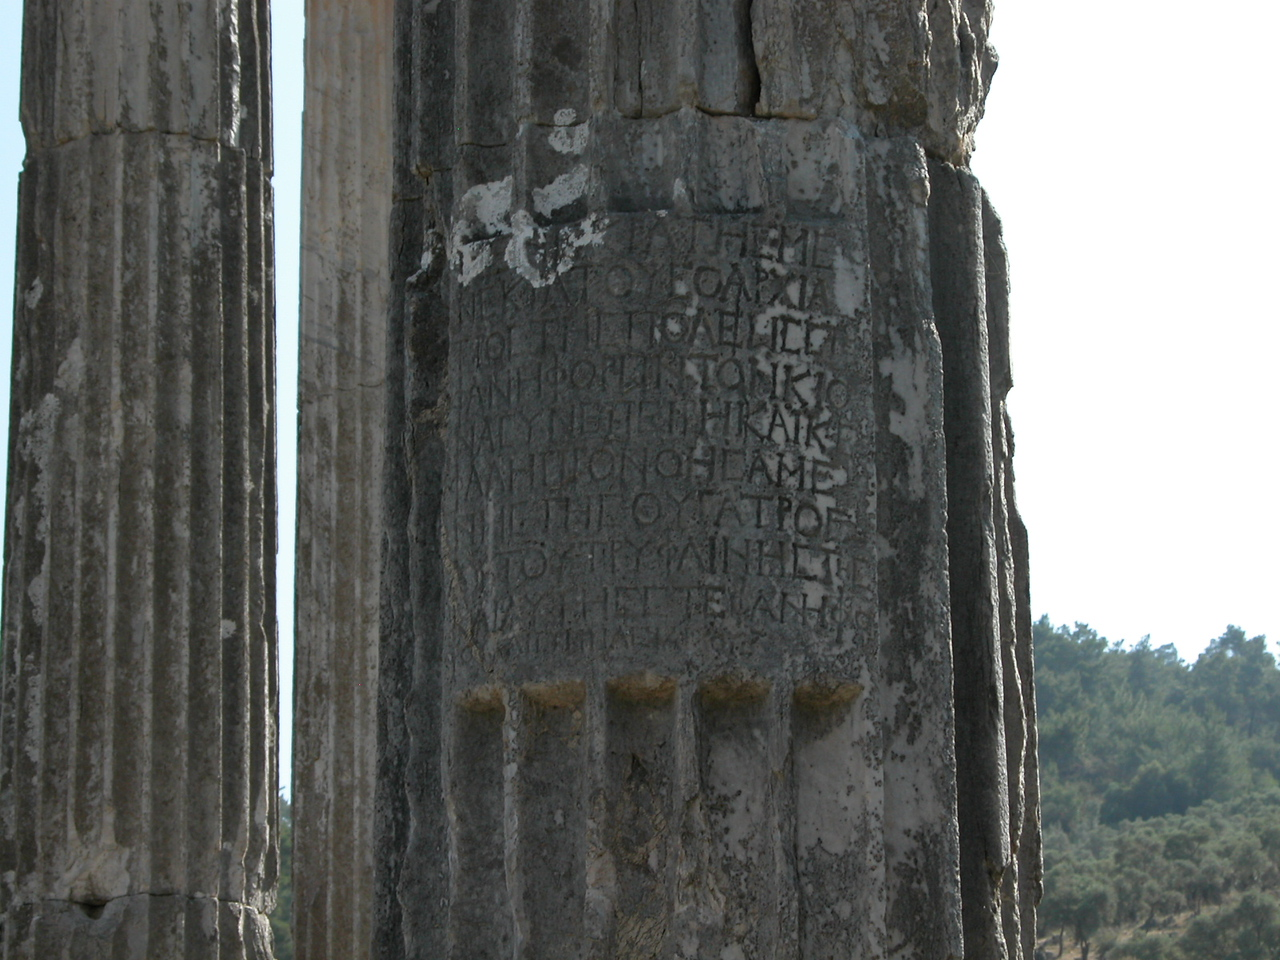 Inscription noted donation of columns